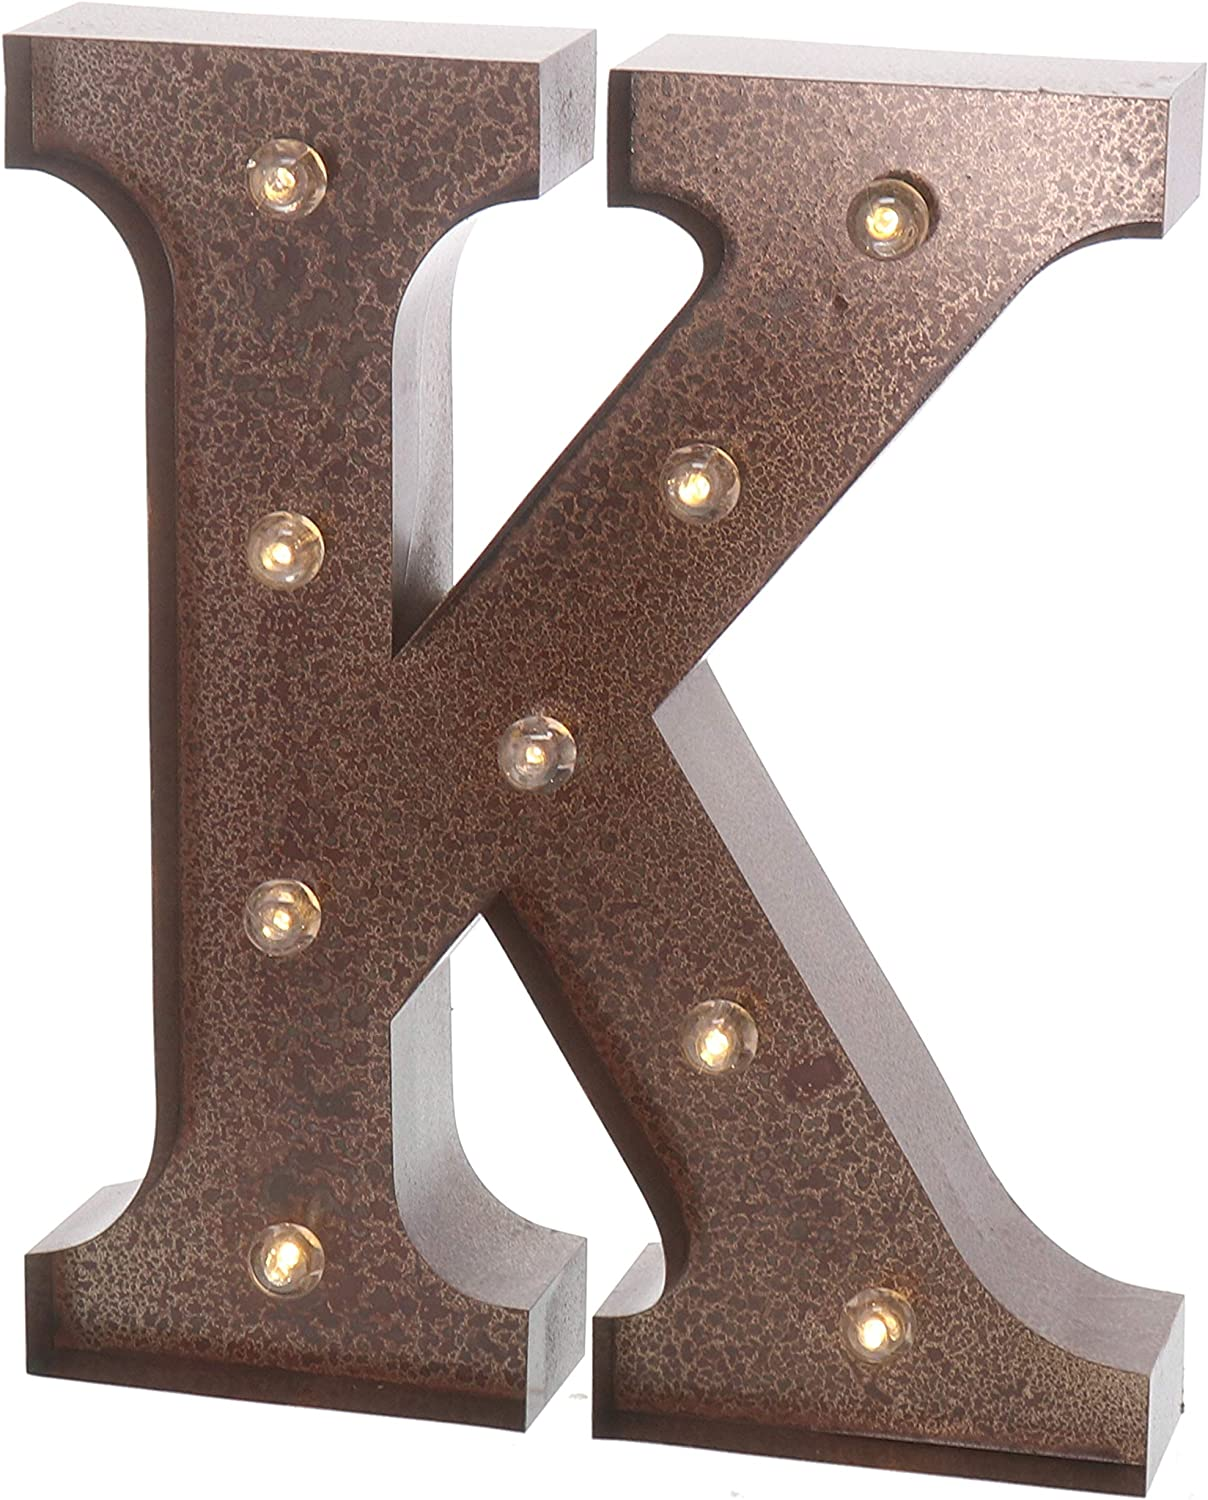 """Barnyard Designs Metal Marquee Letter K Light Up Wall Initial Wedding, Home and Bar Decoration 12"""" (Rust)"""